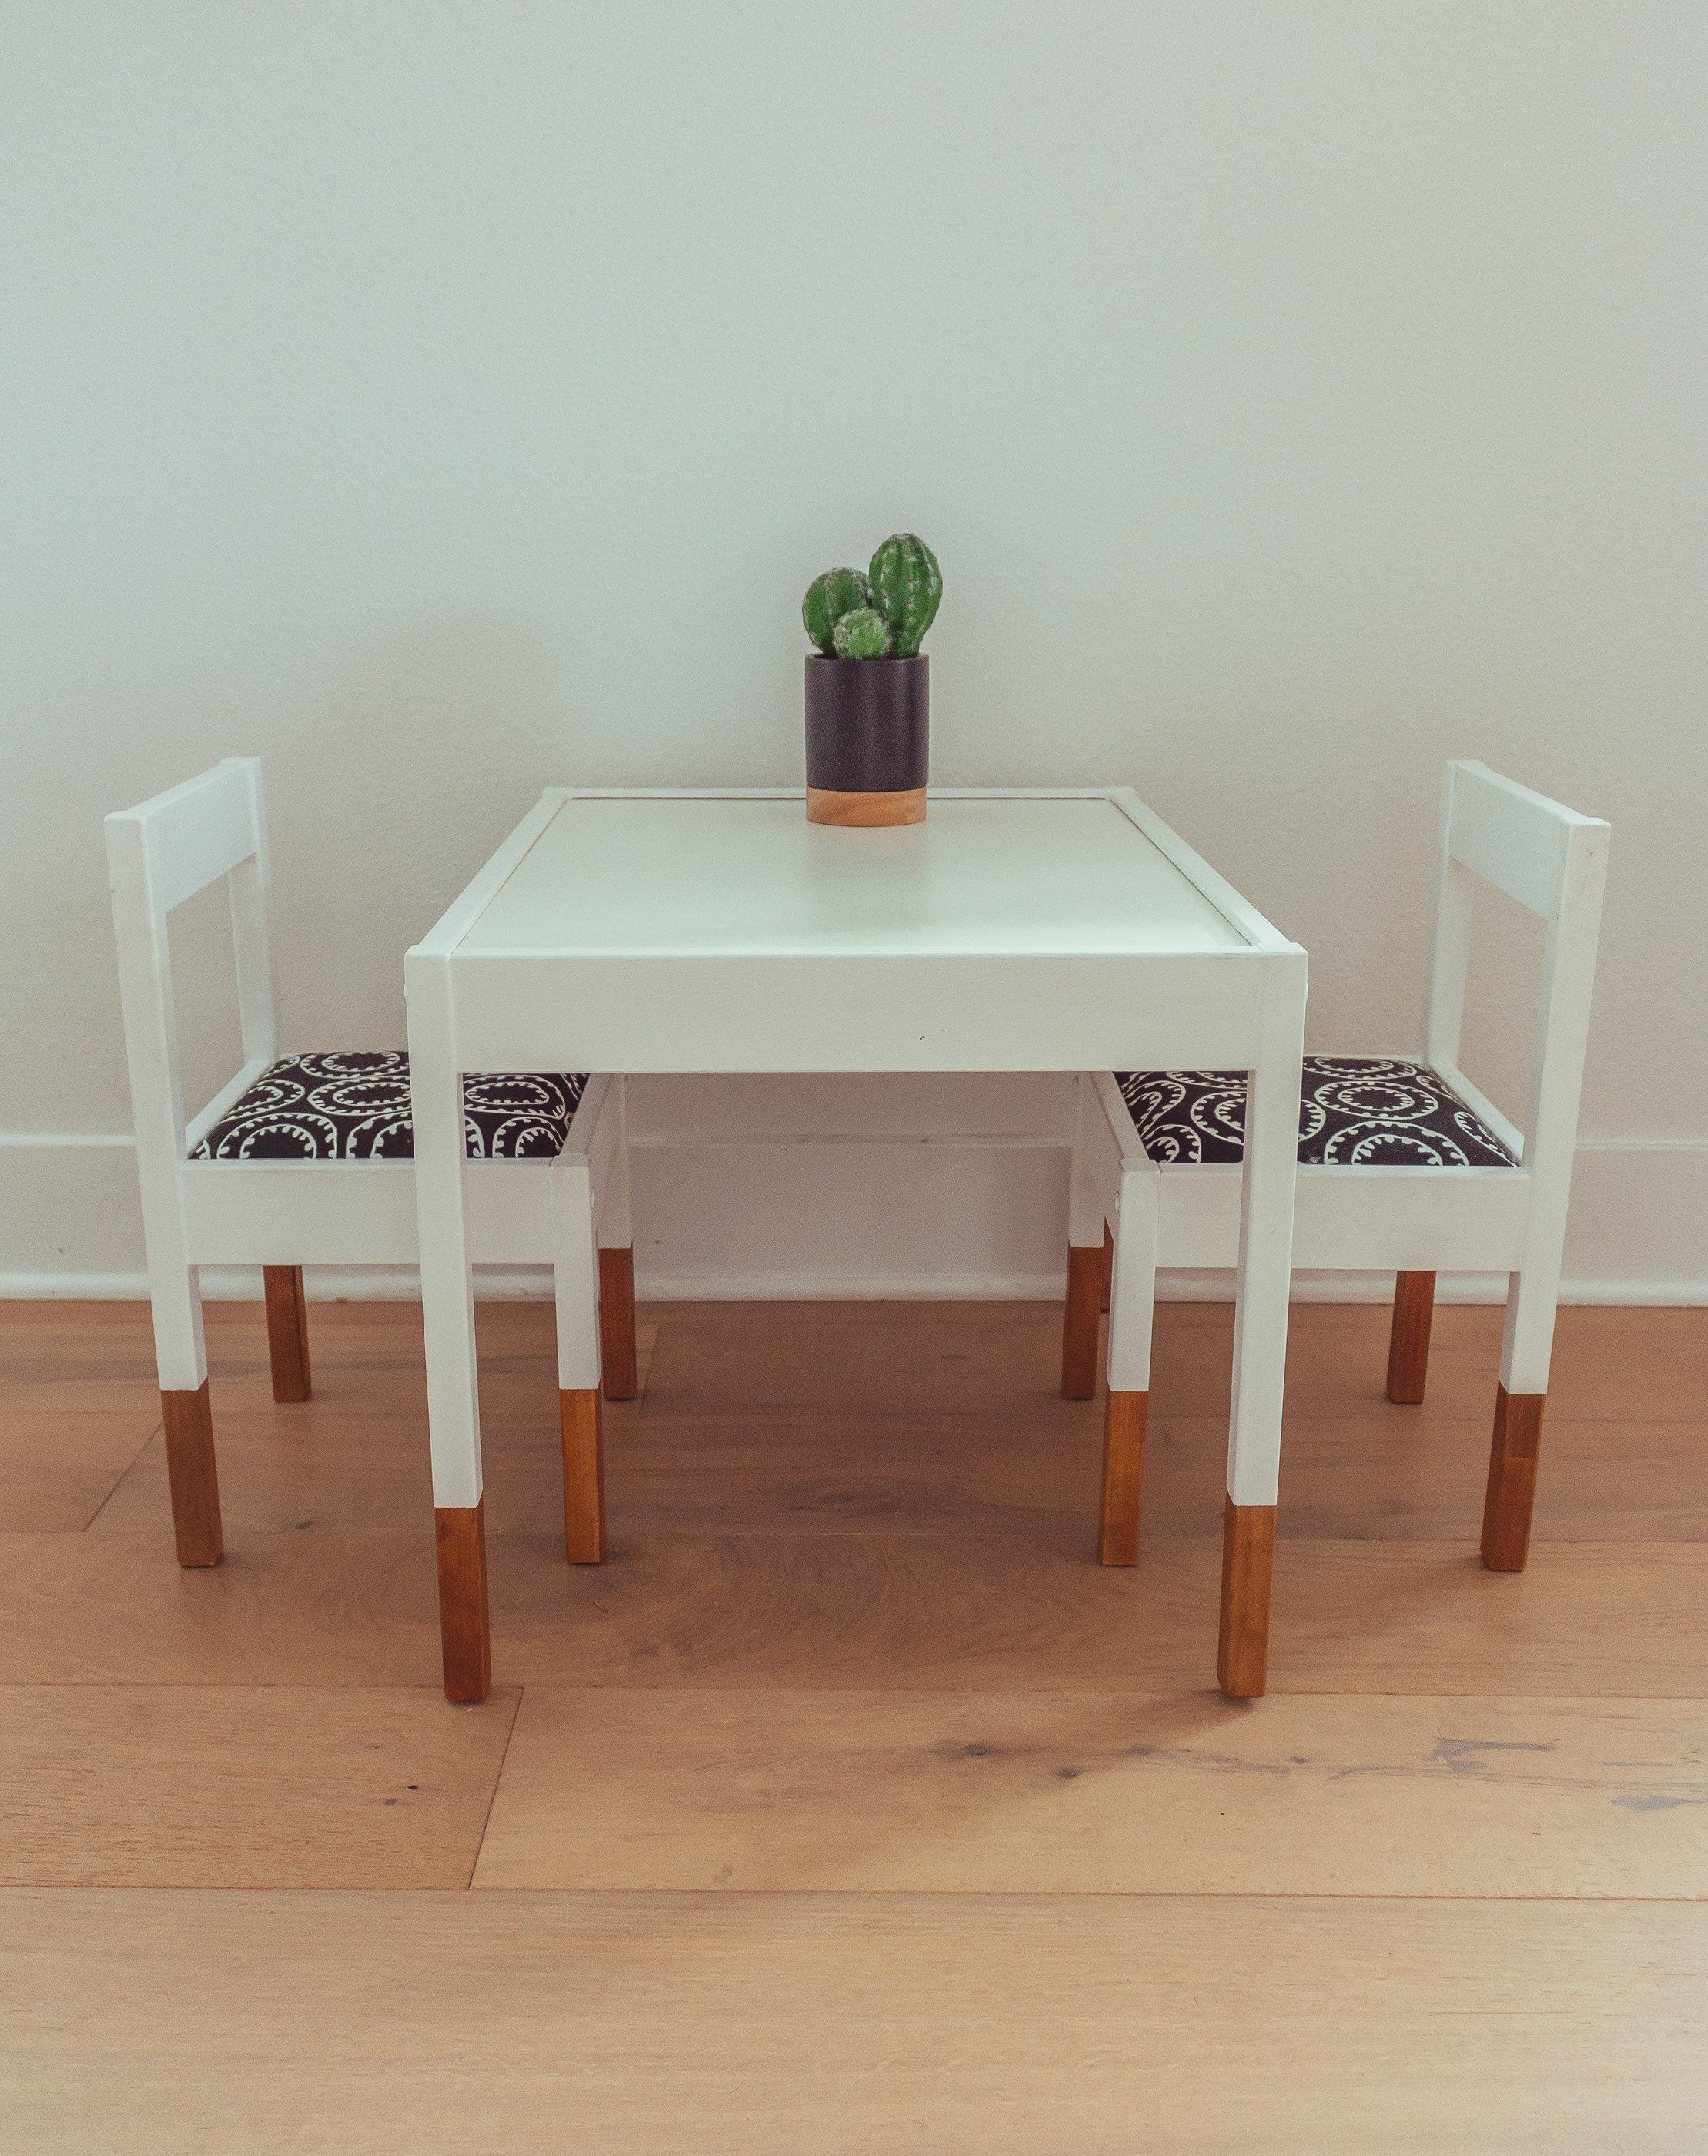 Ikea Latt Kid S Table Hack Ikea Childrens Table Kids Table And Chairs Ikea Toddler Table